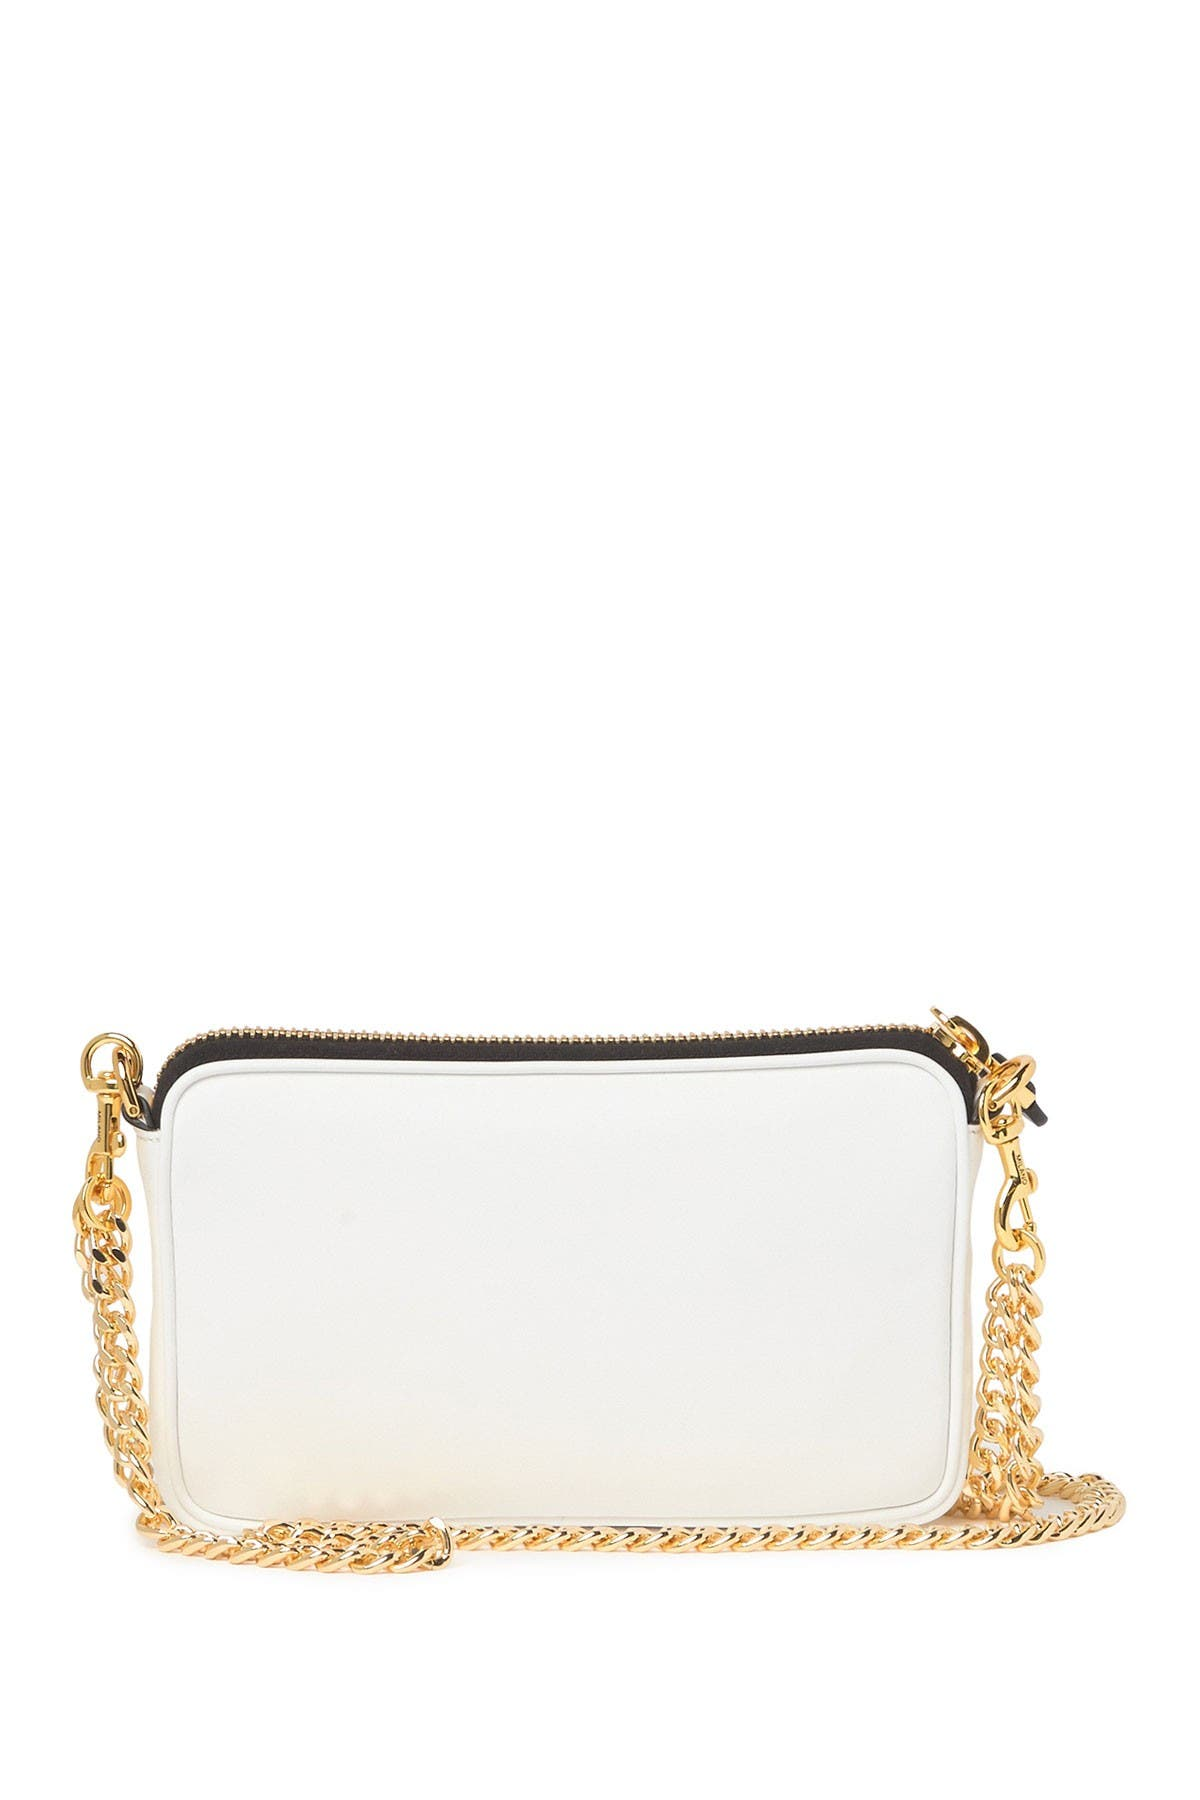 Image of MOSCHINO Logo Chain Strap Leather Crossbody Bag